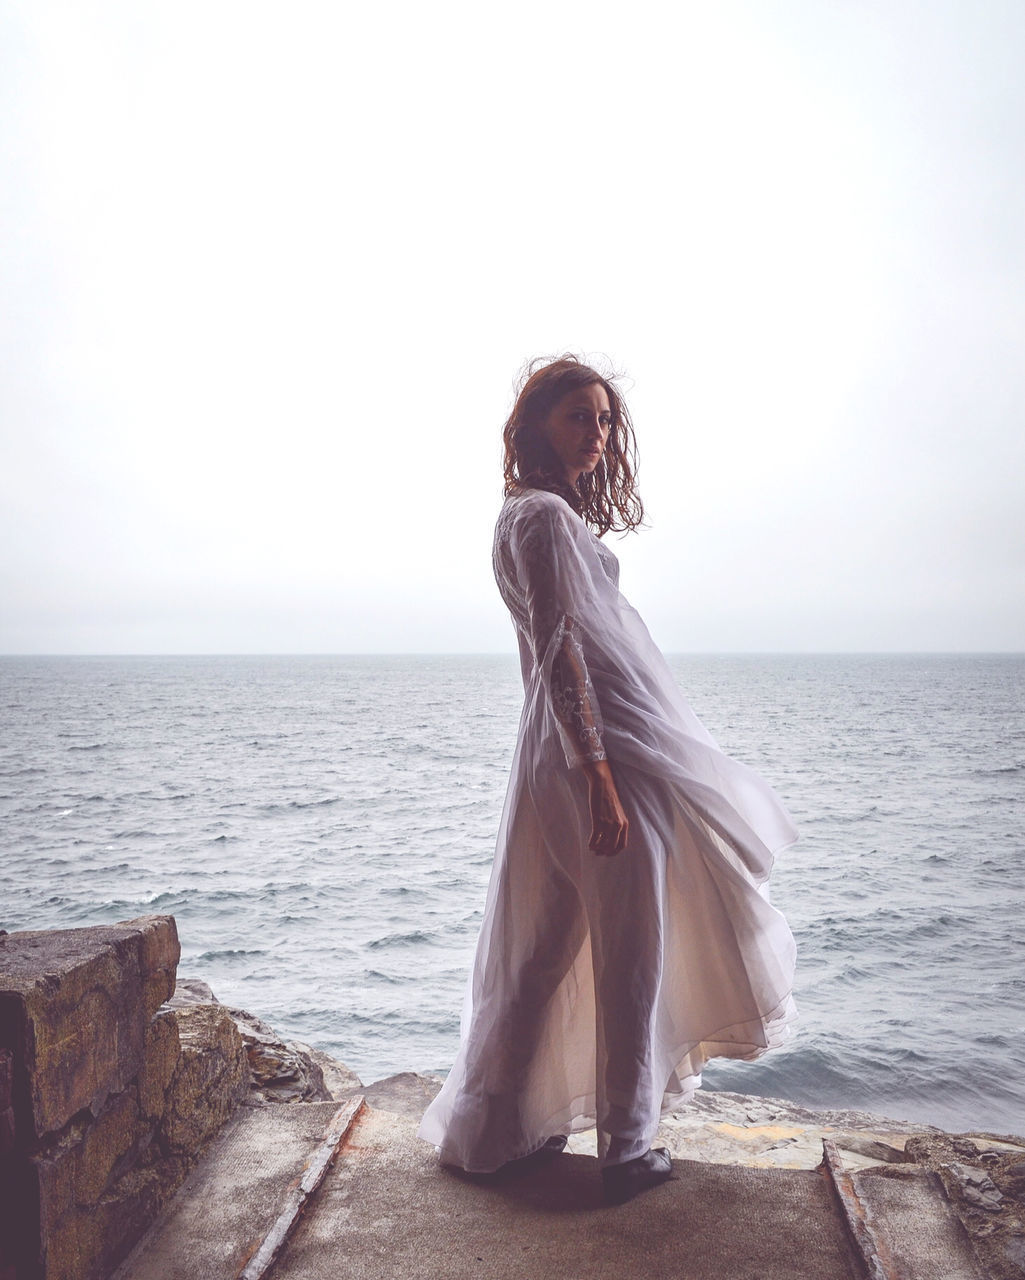 WOMAN STANDING AT SHORE AGAINST SEA